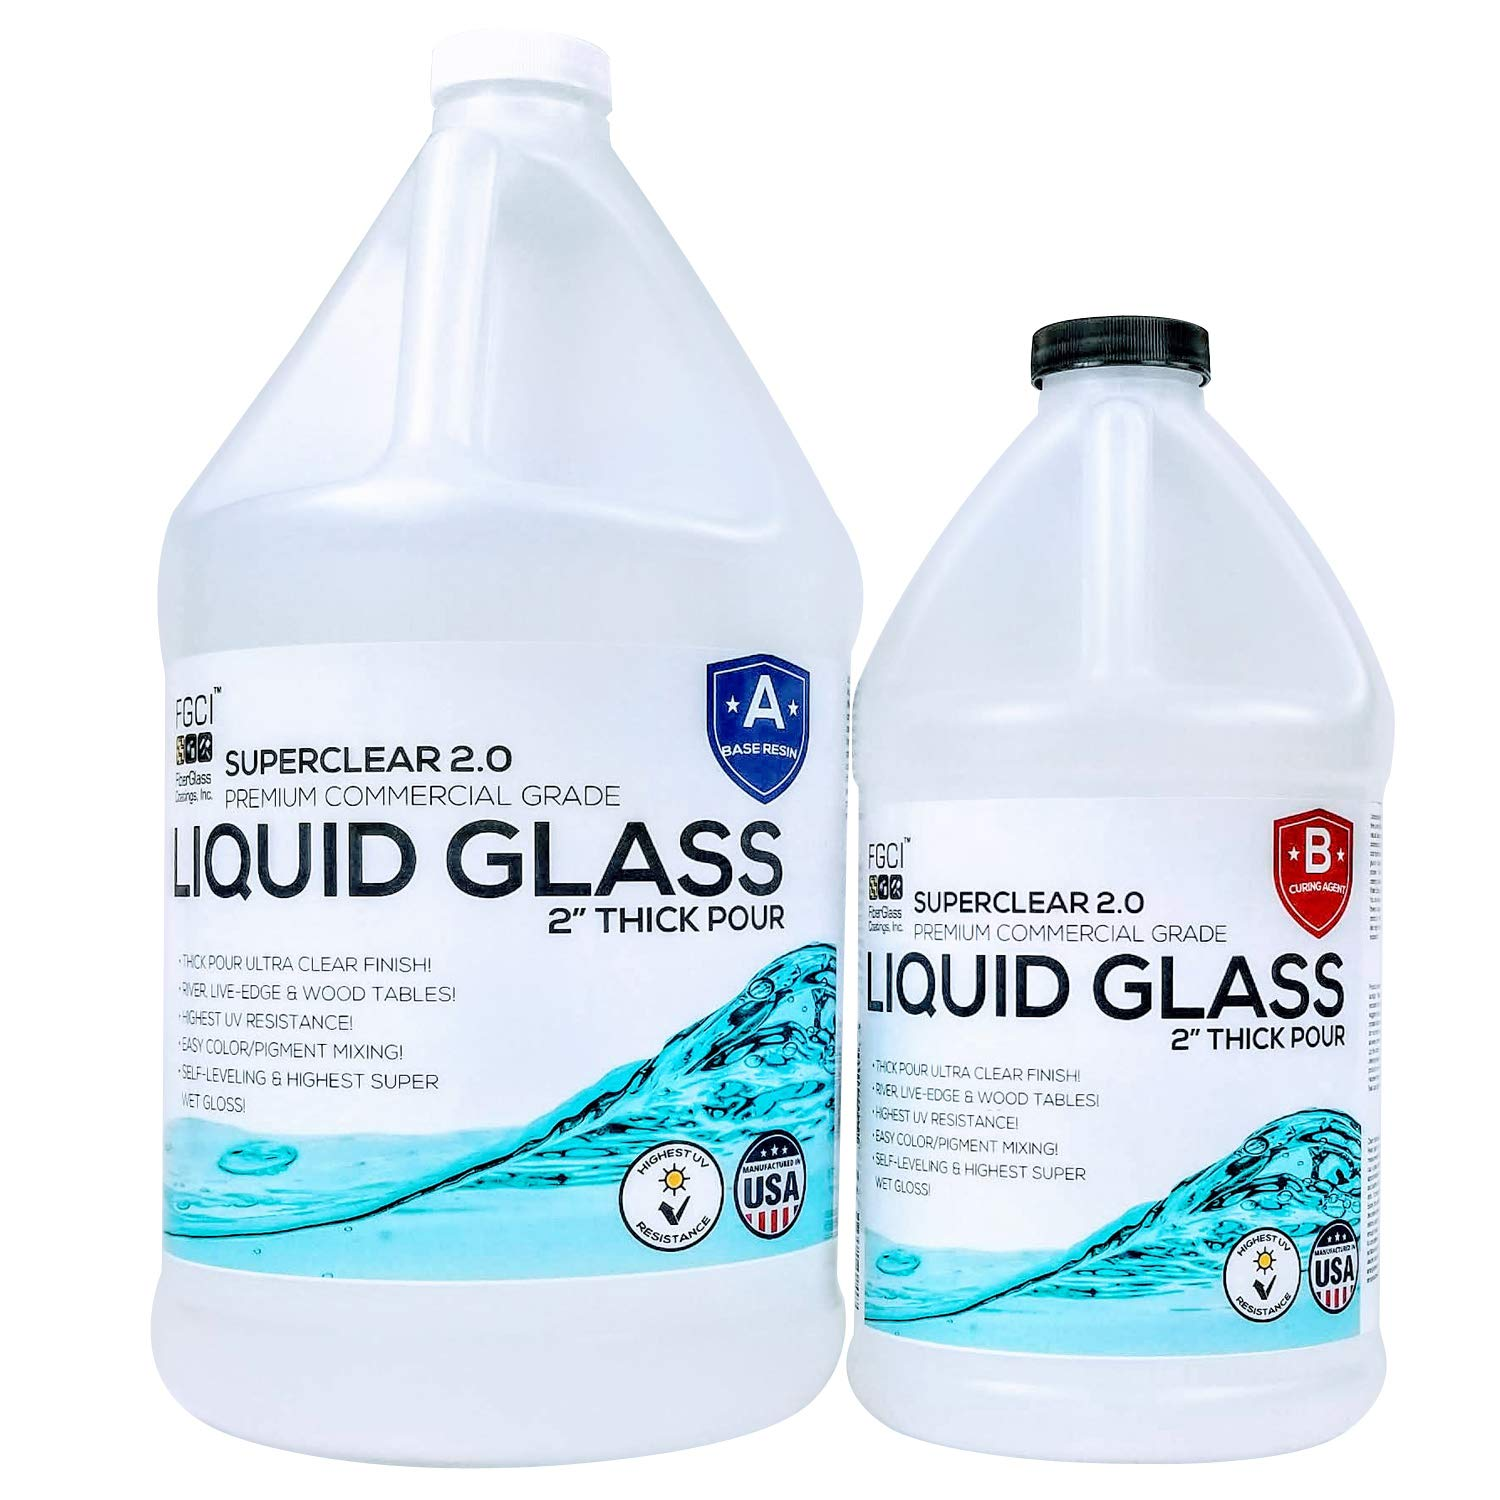 Epoxy Resin Crystal Clear Liquid Glass 2 to 4 inch DEEP Pour 1½ GL Resin Kit, Self Leveling, Clear Resin, Perfect for Mica Powder, Epoxy Resin Table DIY, Deep Resin Molds, River Table, Resin Dye, 2:1